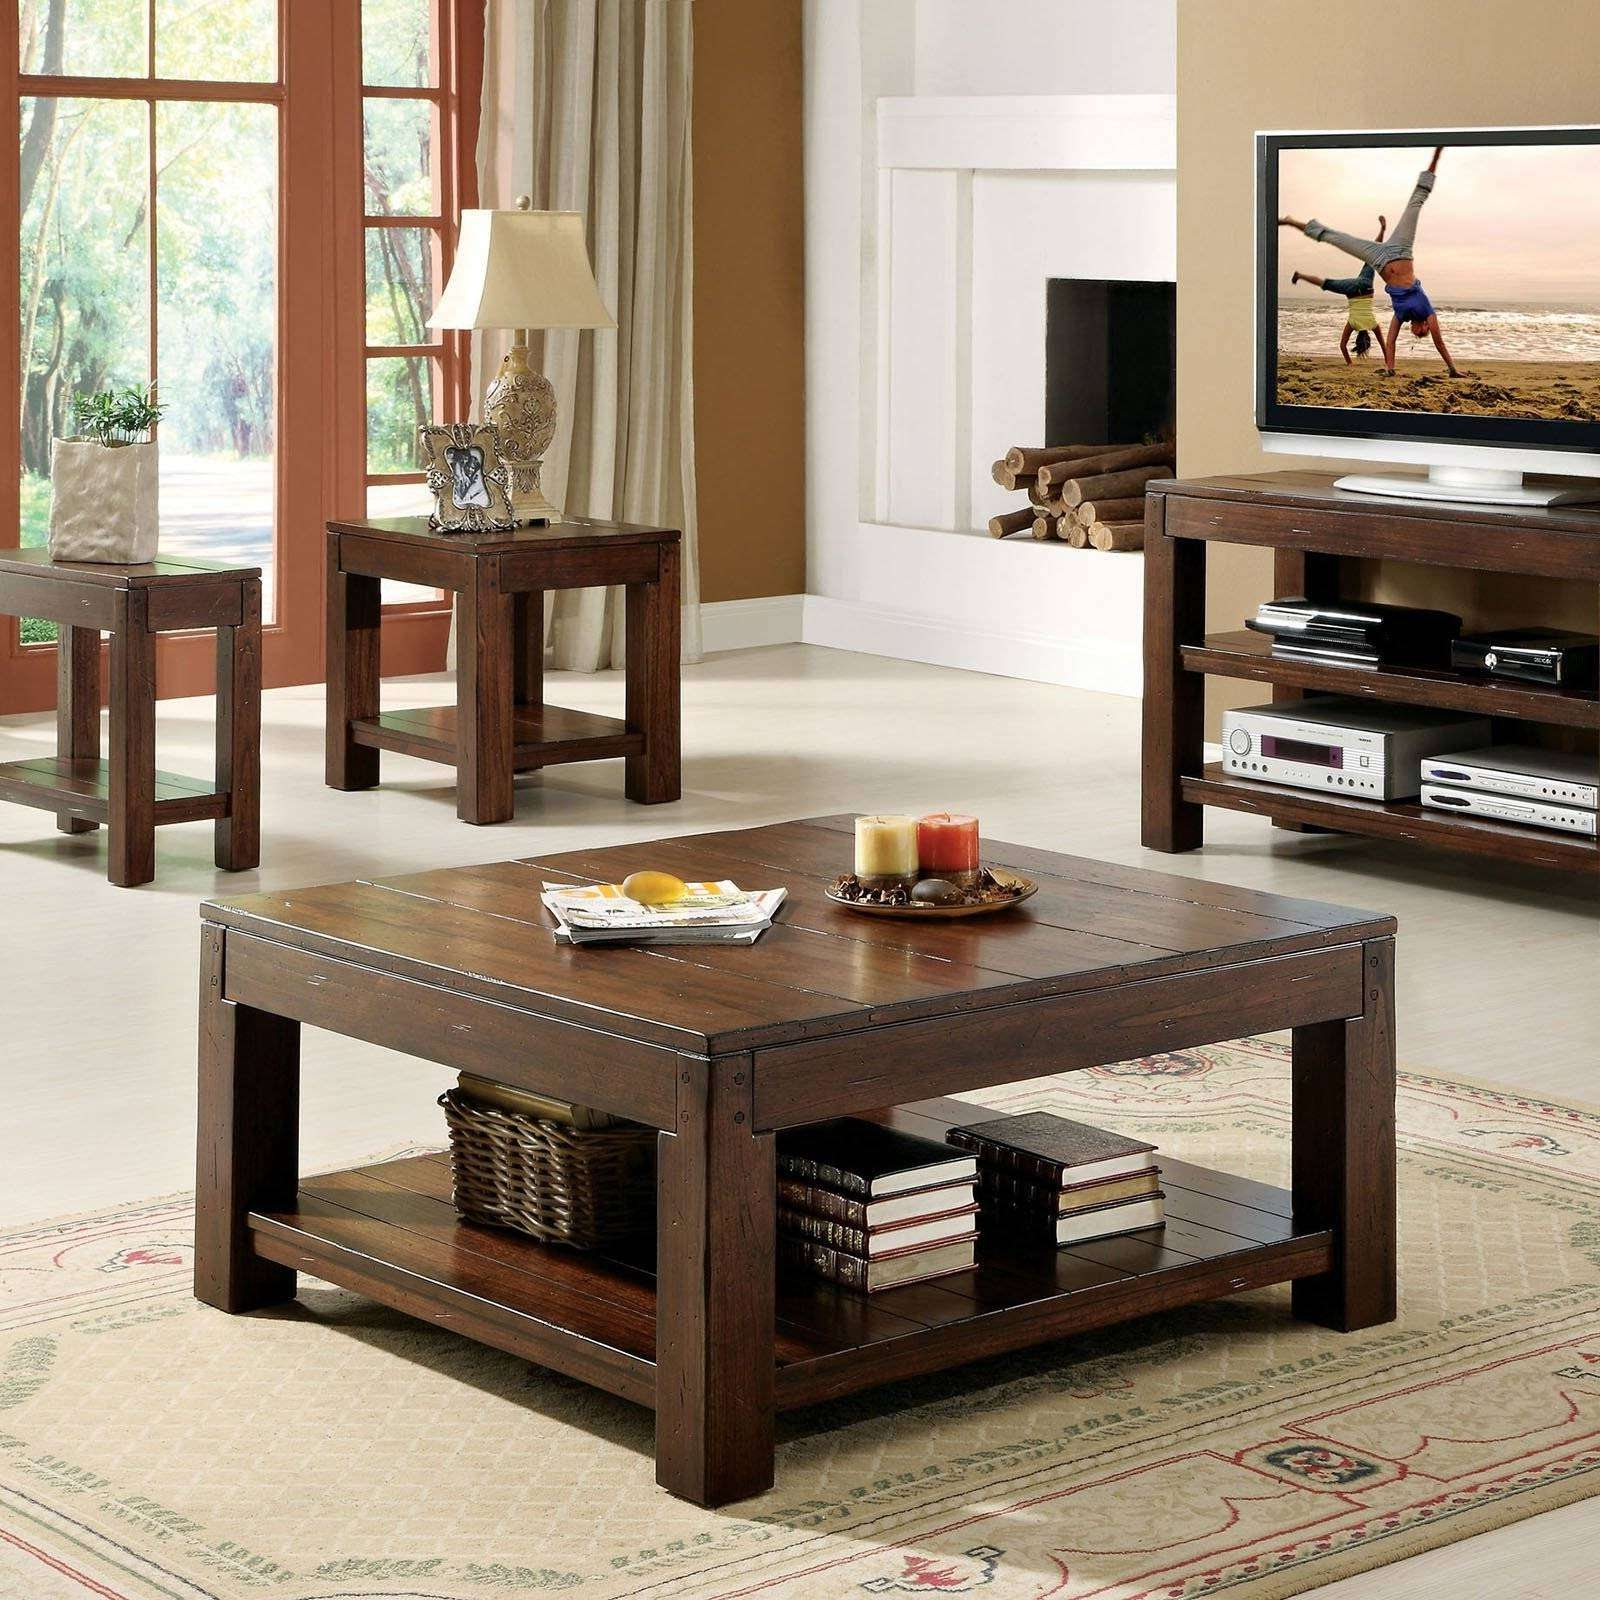 Trendy Tv Unit And Coffee Table Sets With Coffee Tables : Sets With Matching Tv Stand Piece Living Room (View 4 of 20)